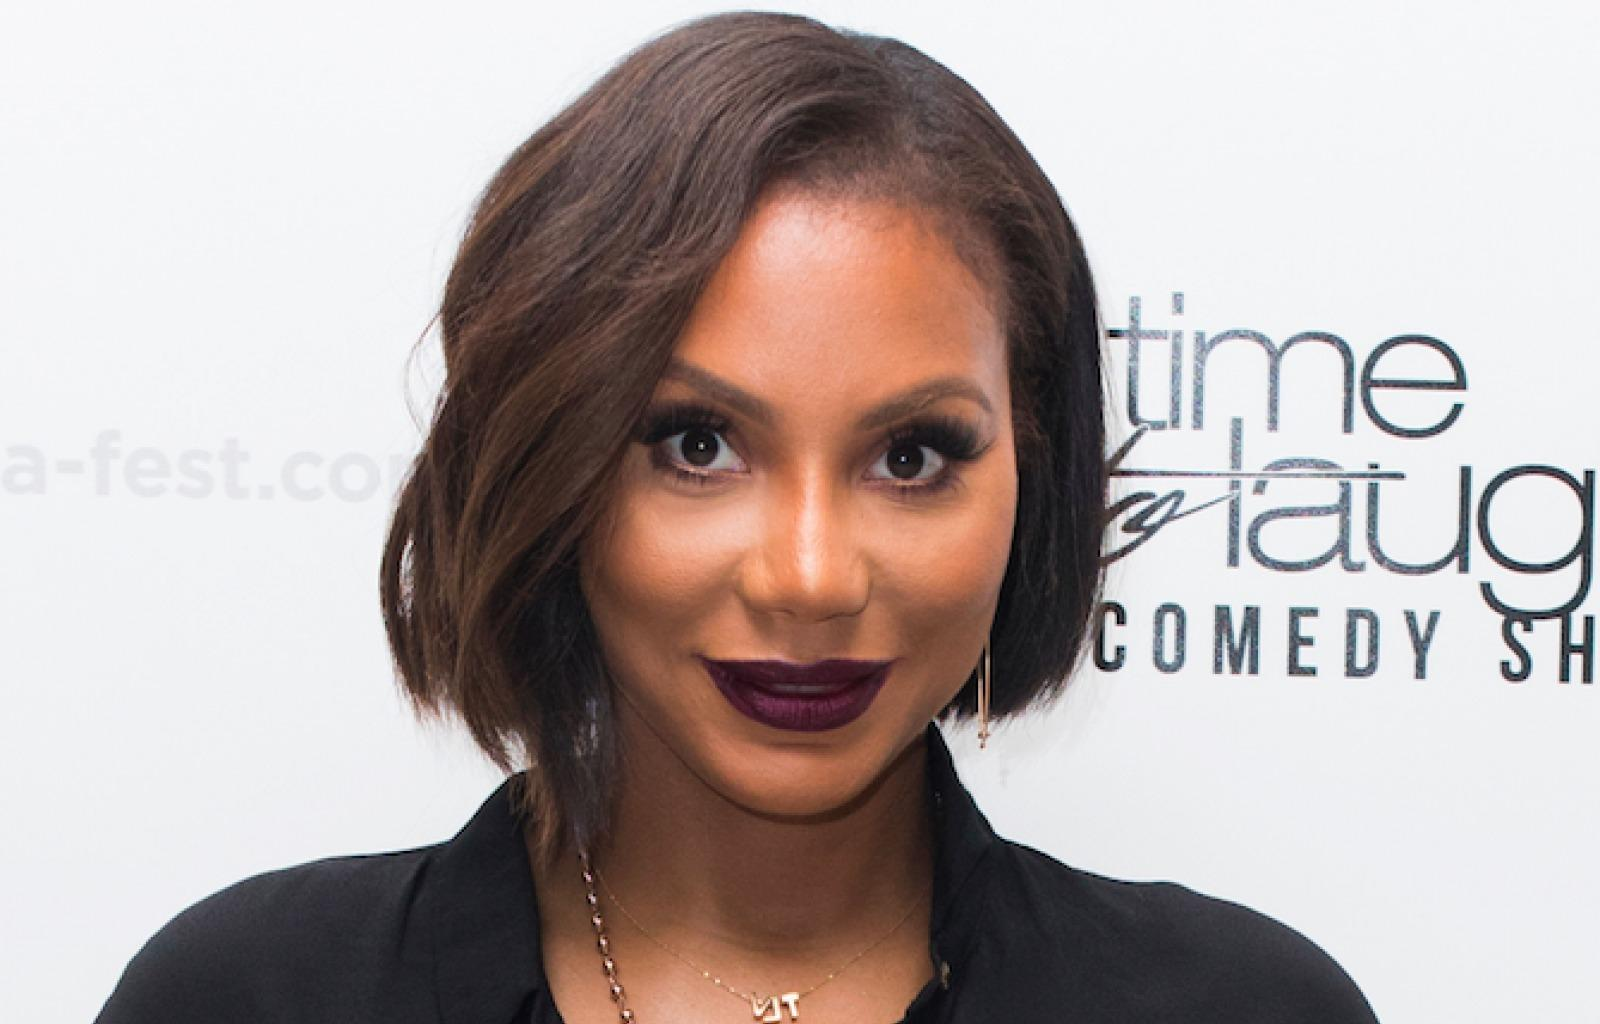 Tamar Braxton Could Not Be Happier Thanks To Her New Show - Check Out Her Emotional Message